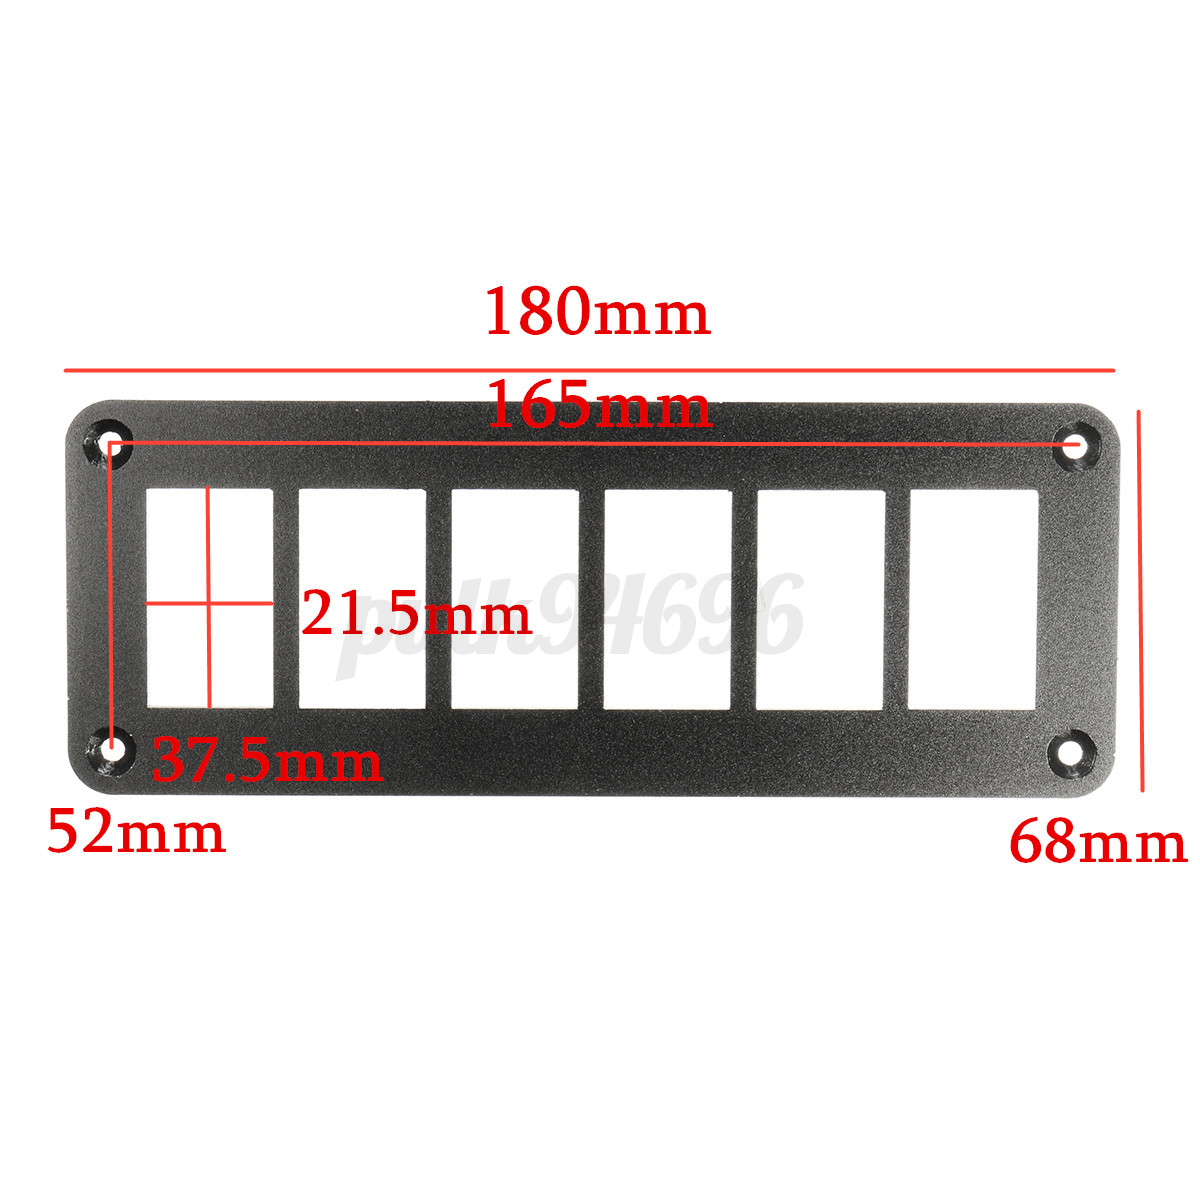 2 3 4 6 Way Car Boat Rocker Switch Panel Housing Patrol Holder For 9 Of 11